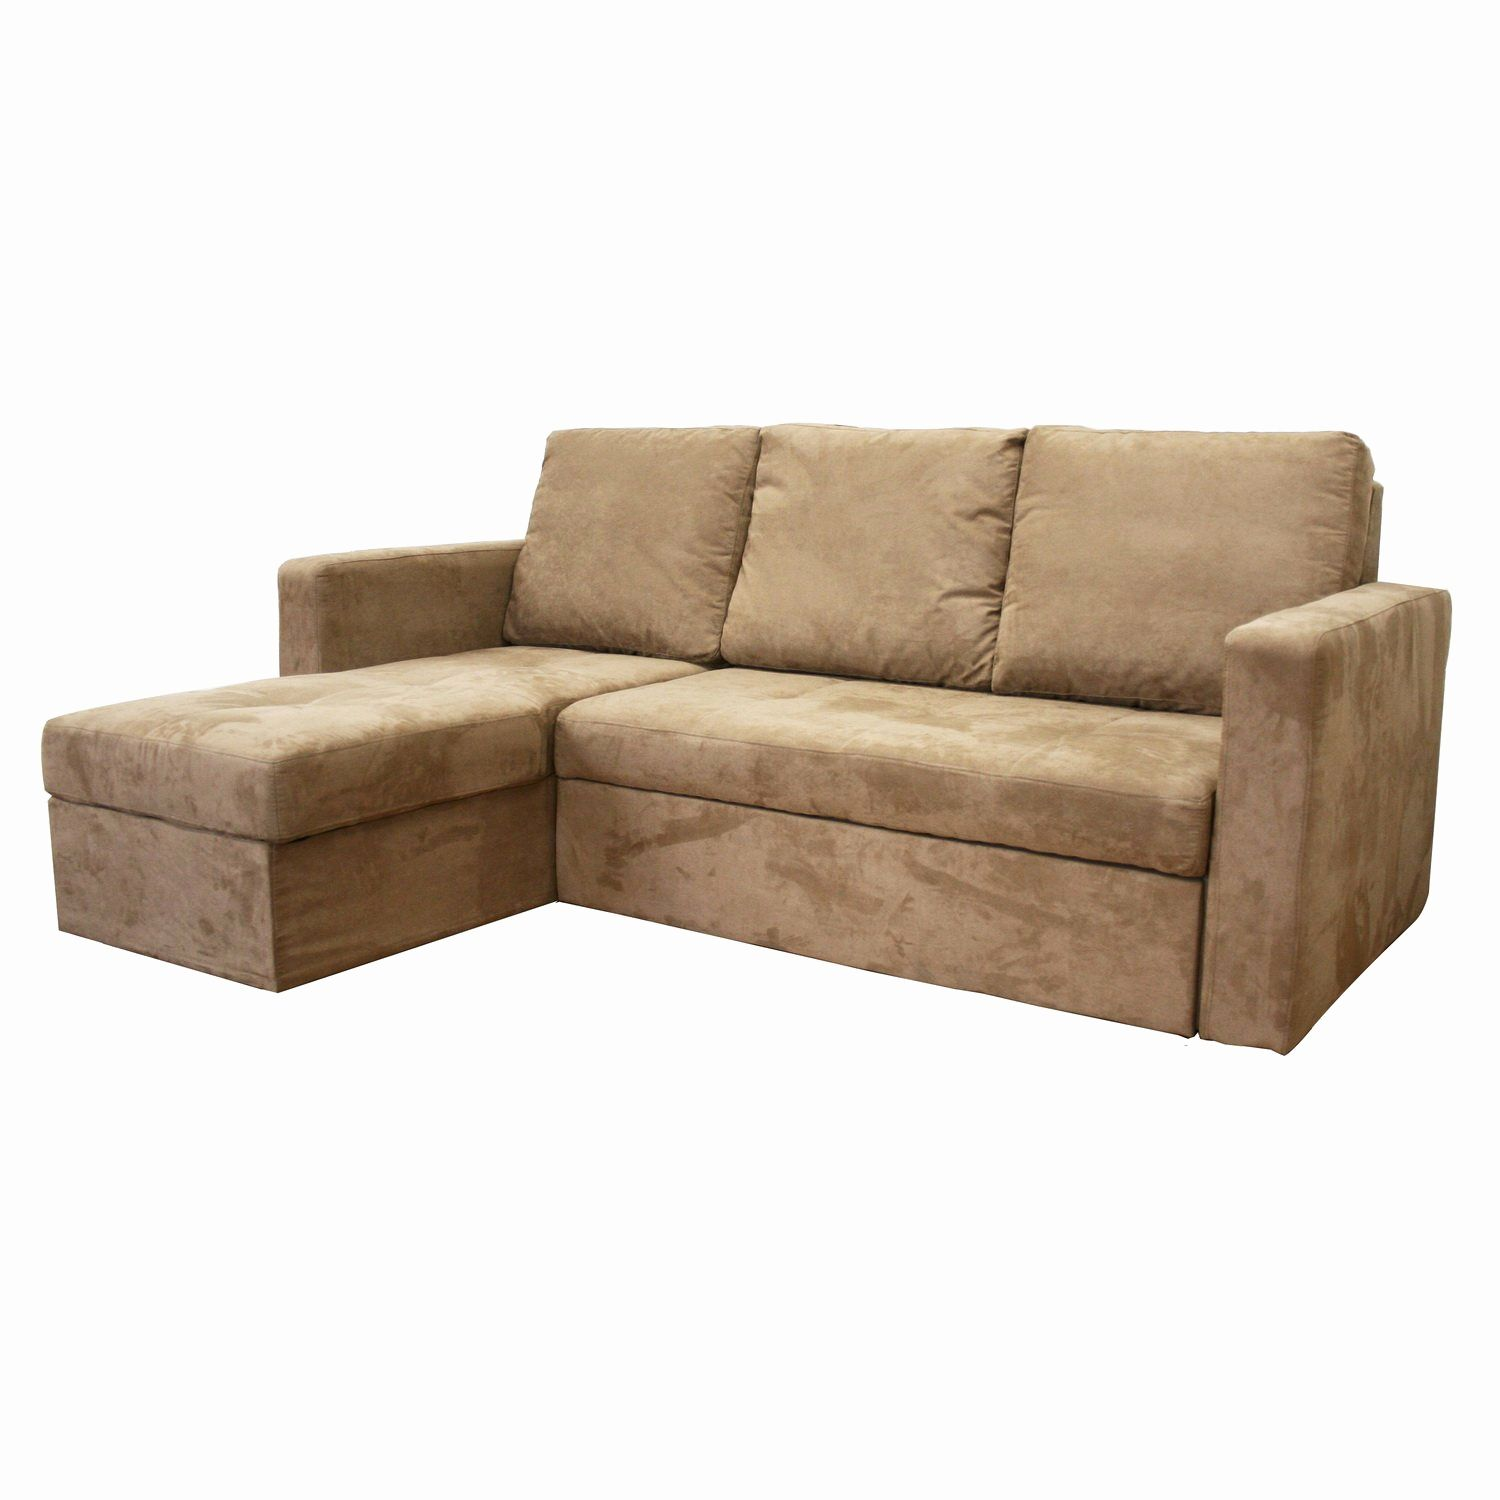 realm s that clean couch girl t stained microfiber out a real throw steam don cleaning